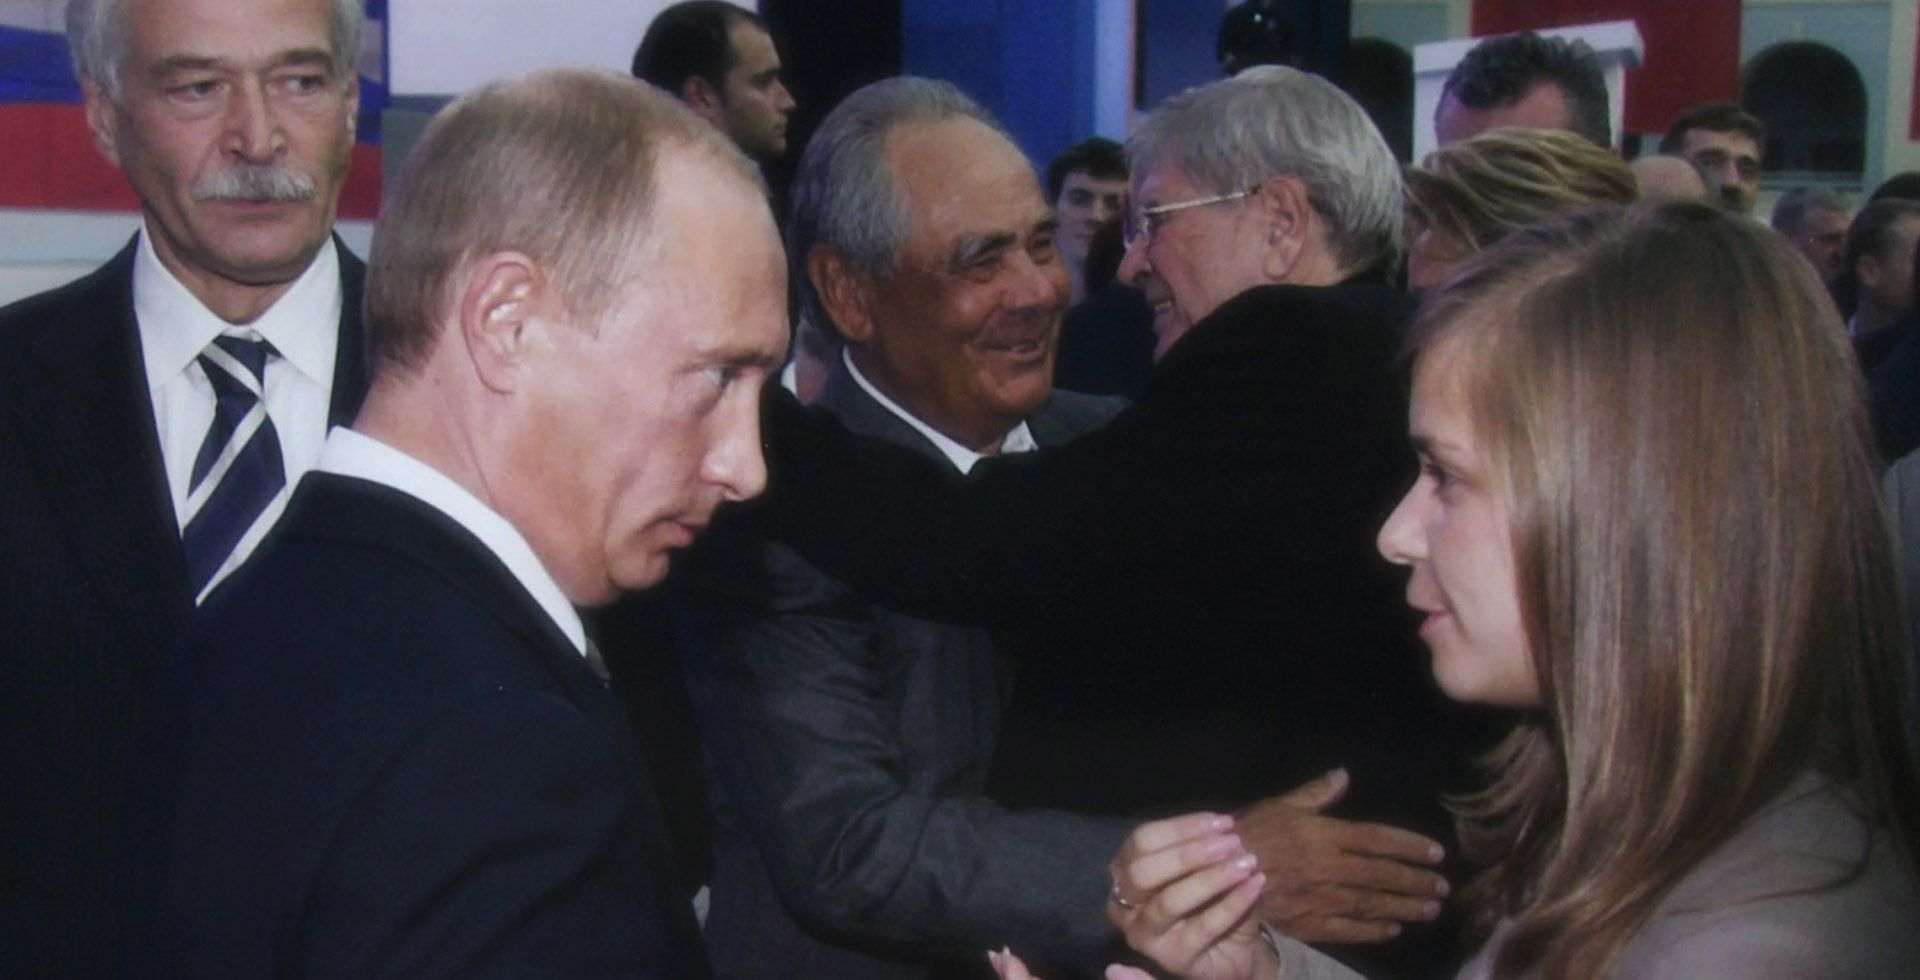 An image from Putin's Kiss